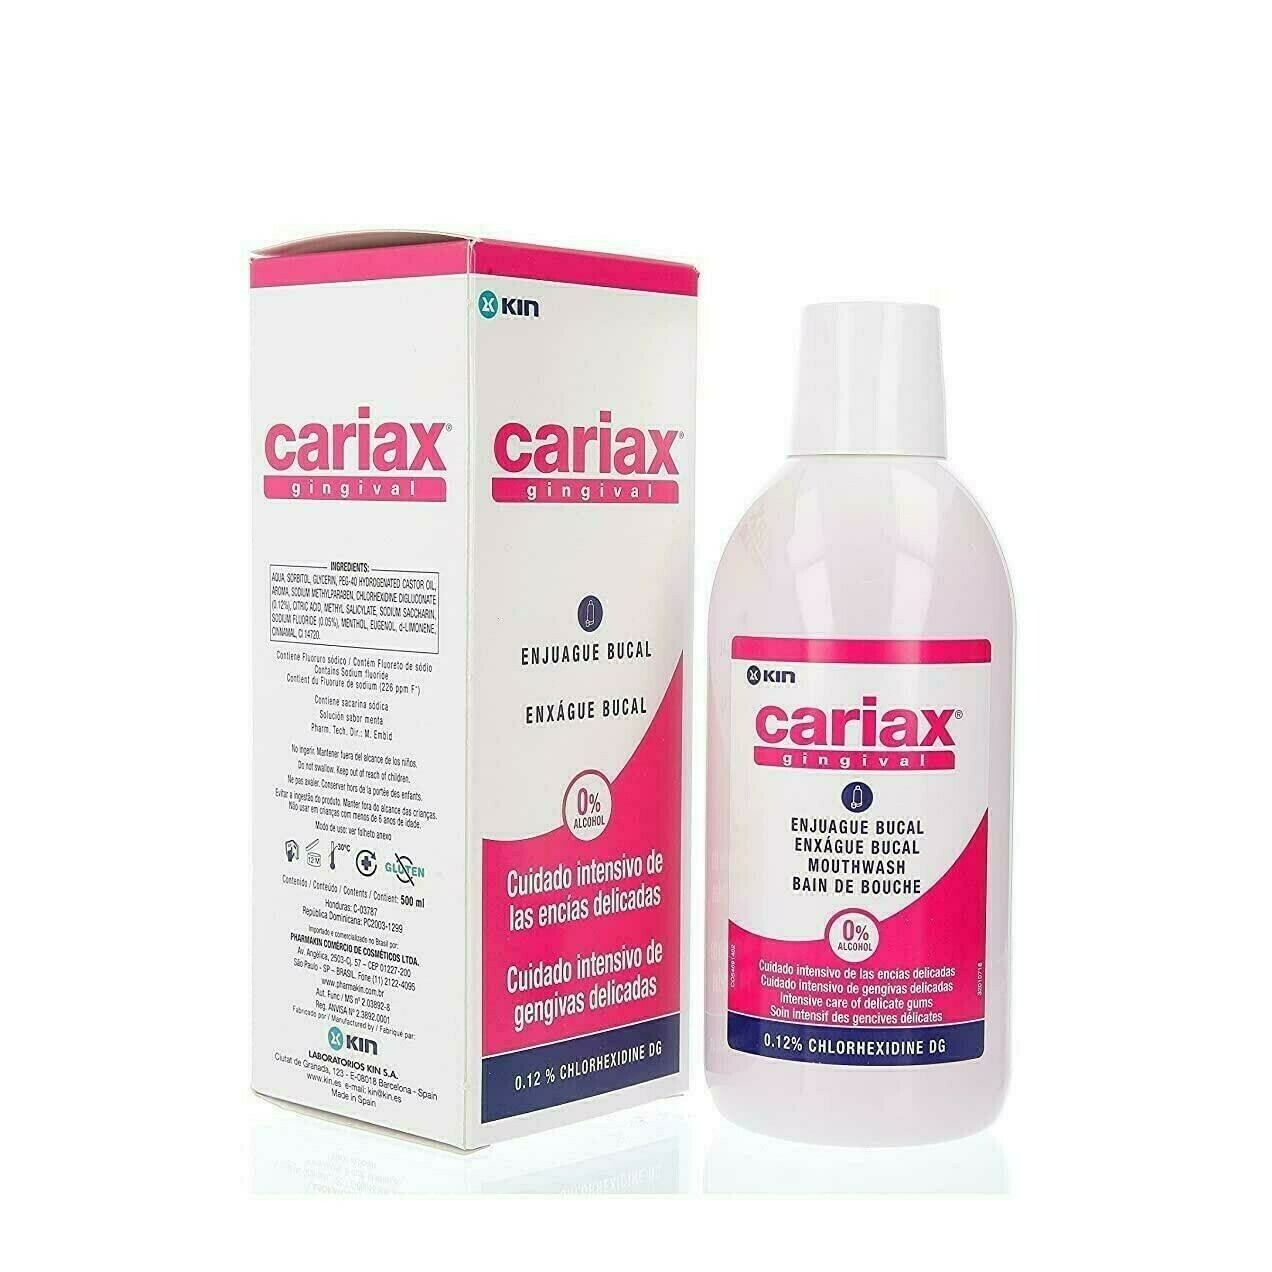 CARIAX GINGIVAL ENJUAGUE BUCAL 500 ML